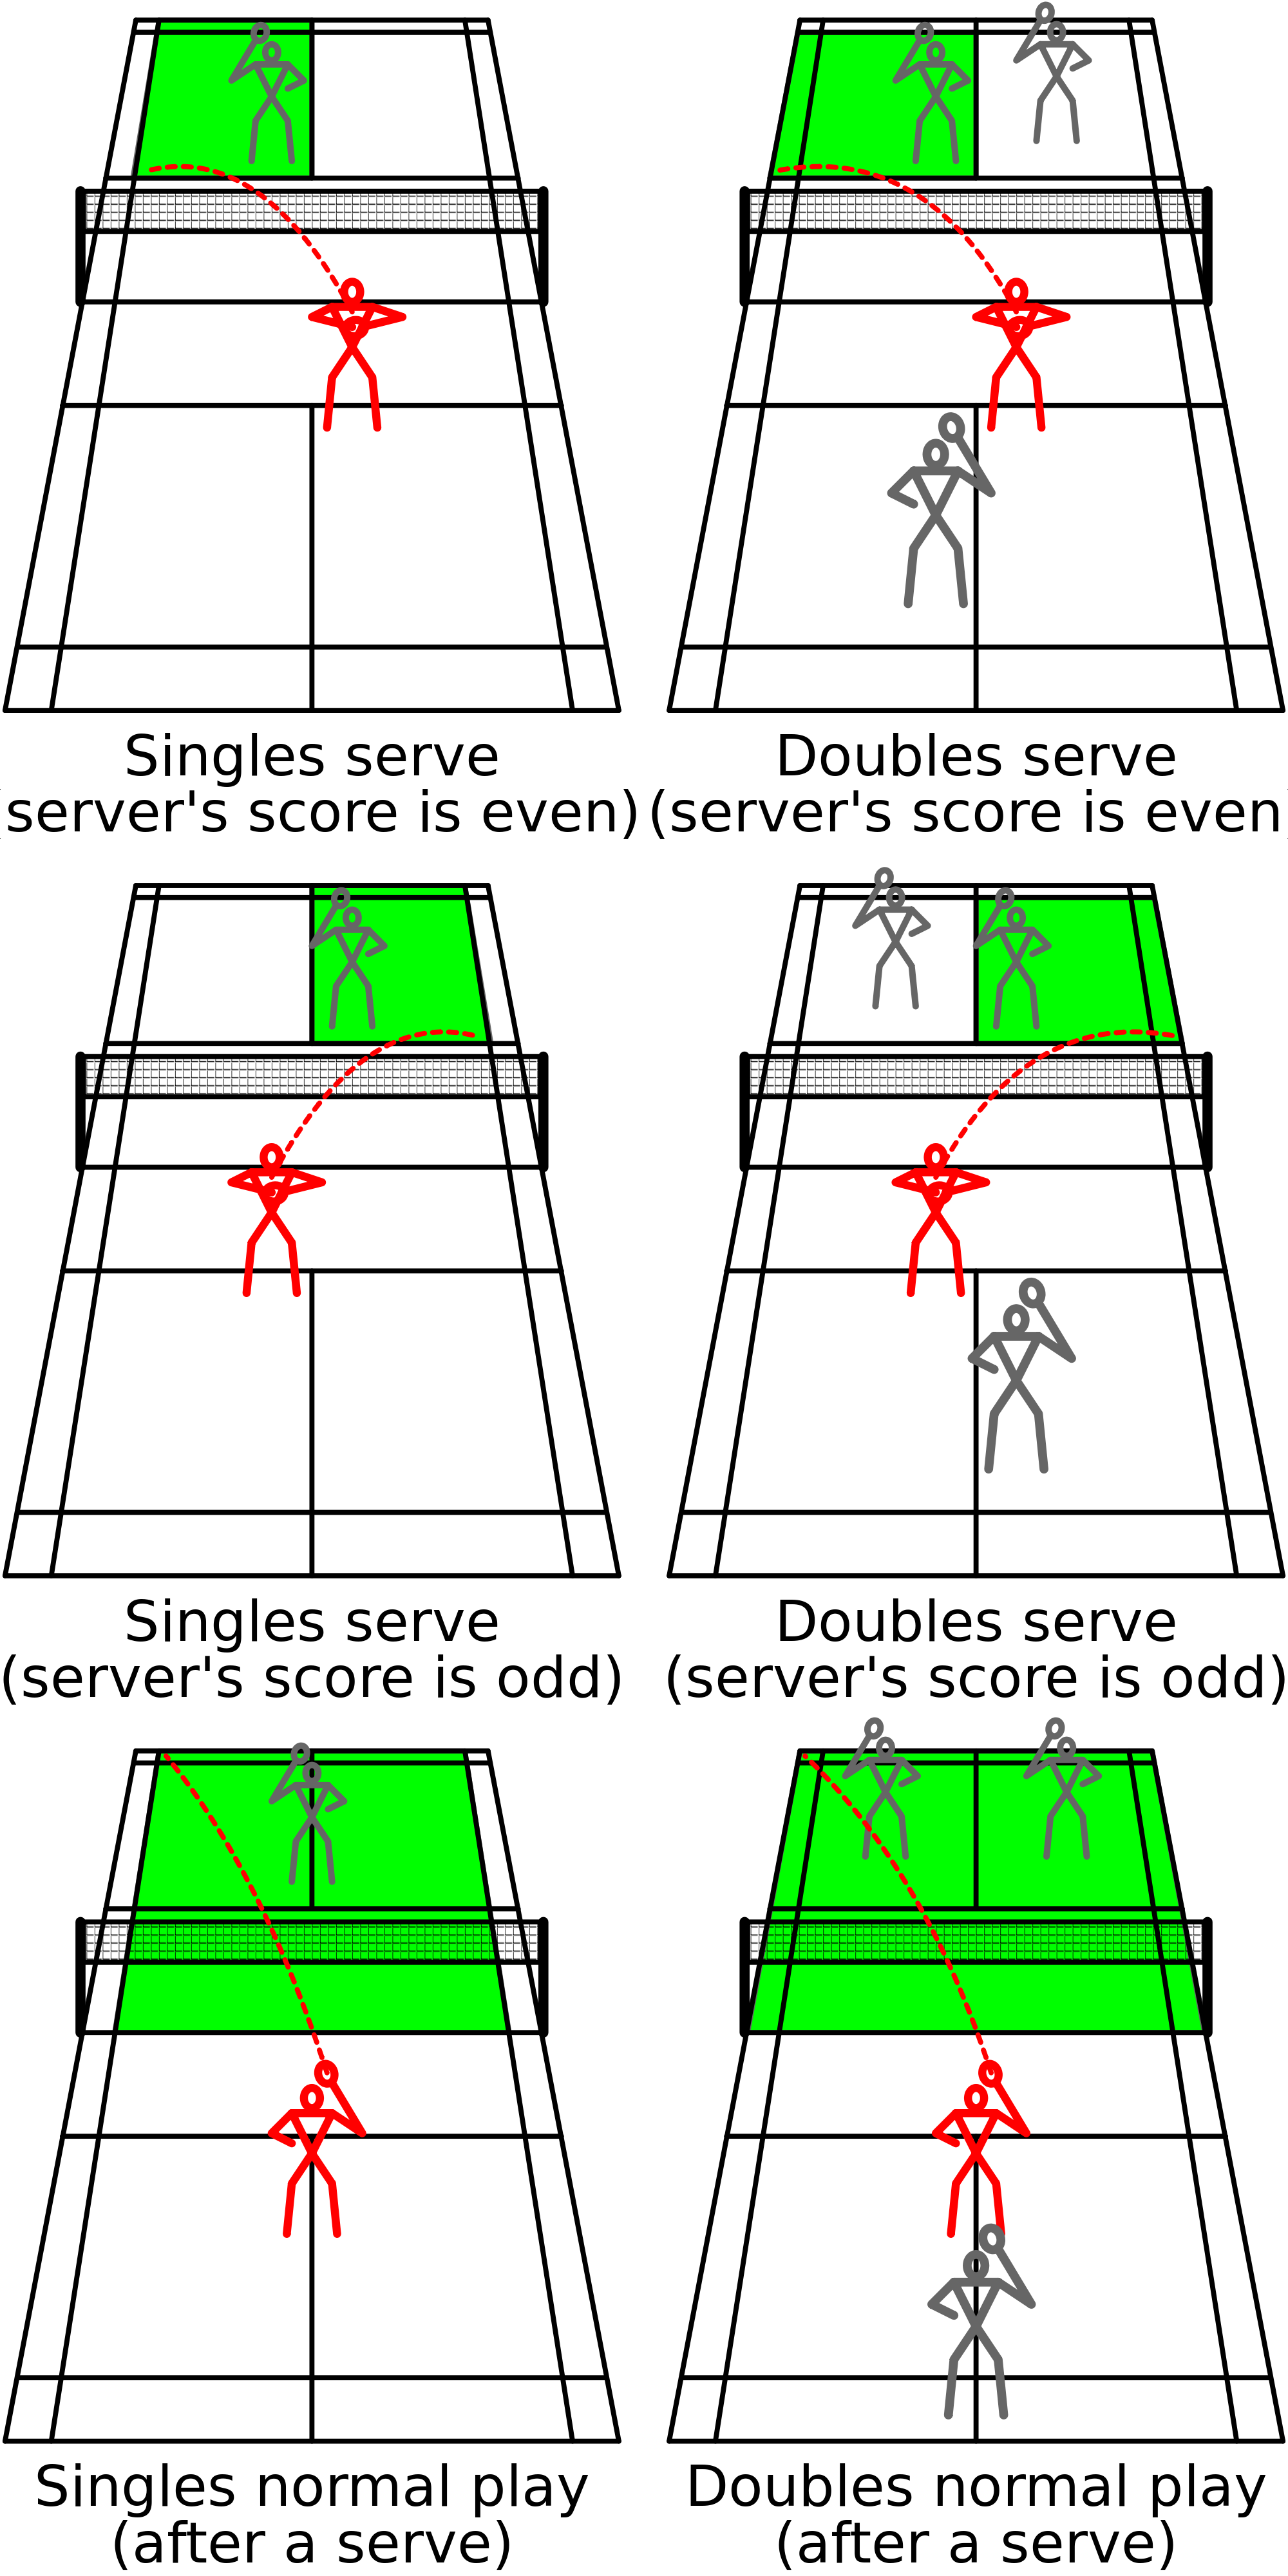 fencing drawing my favourite sport